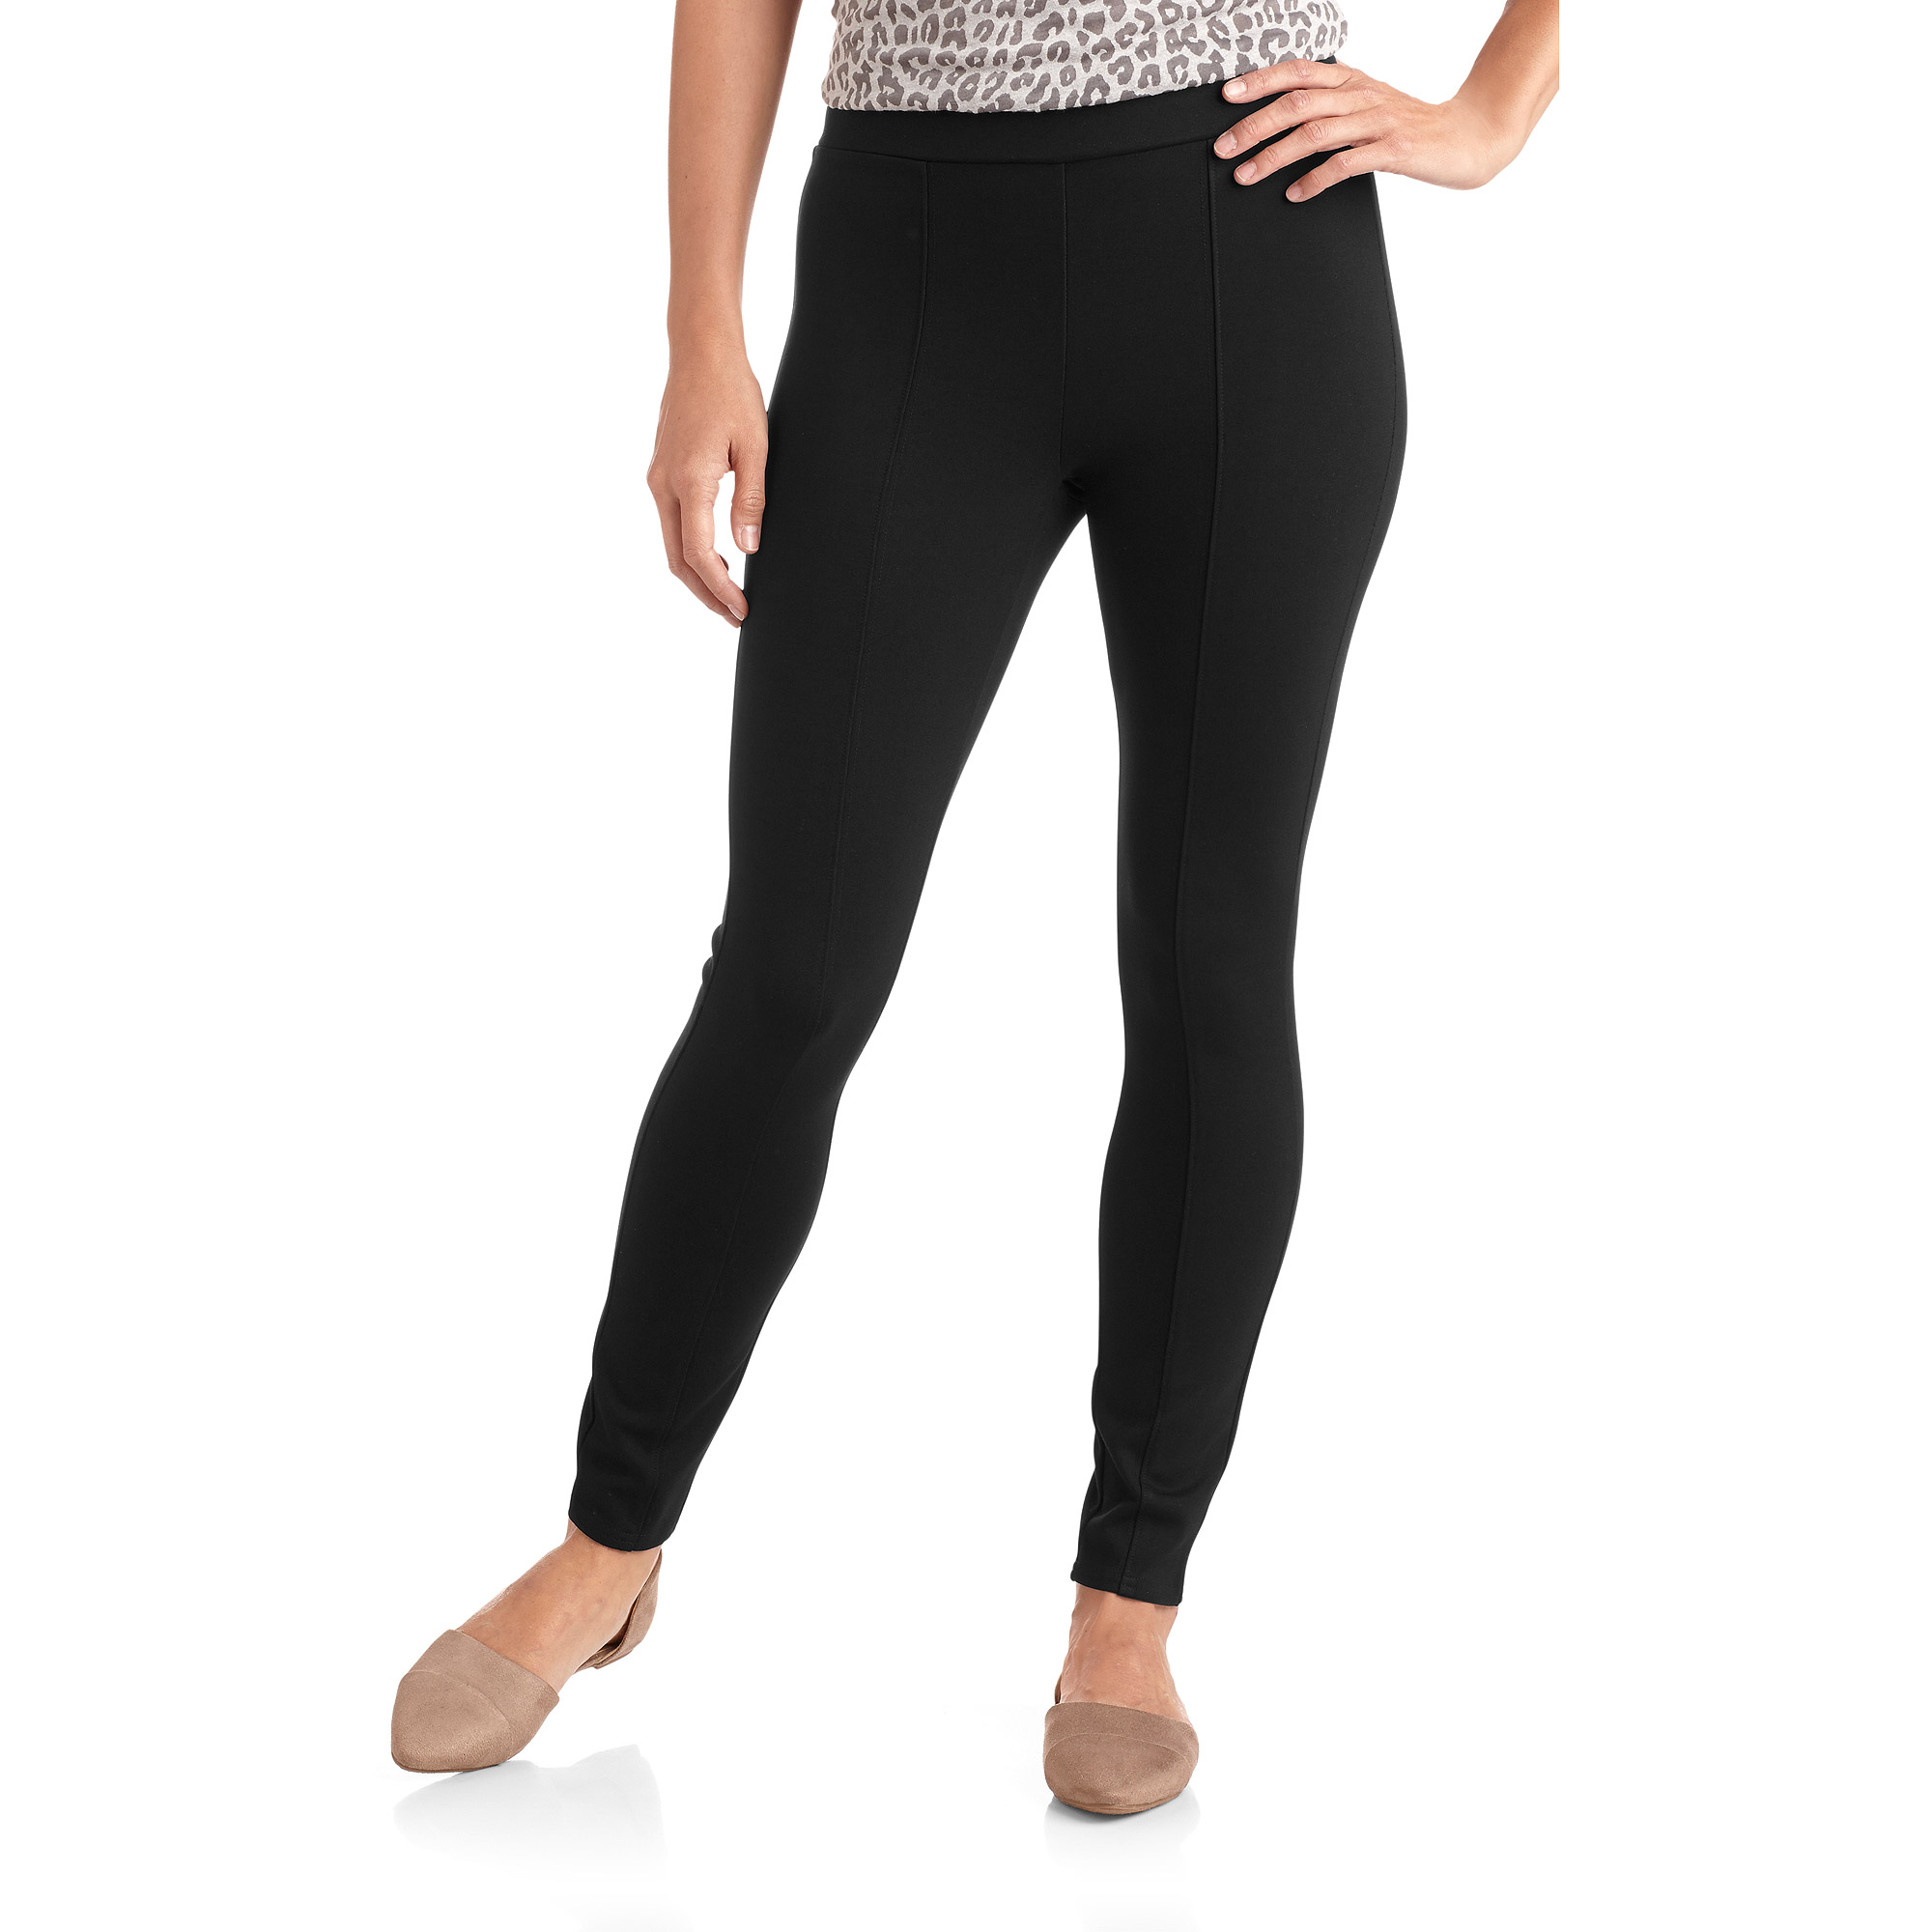 Faded Glory Women's Premium Pull-On Leggings with Front Seaming